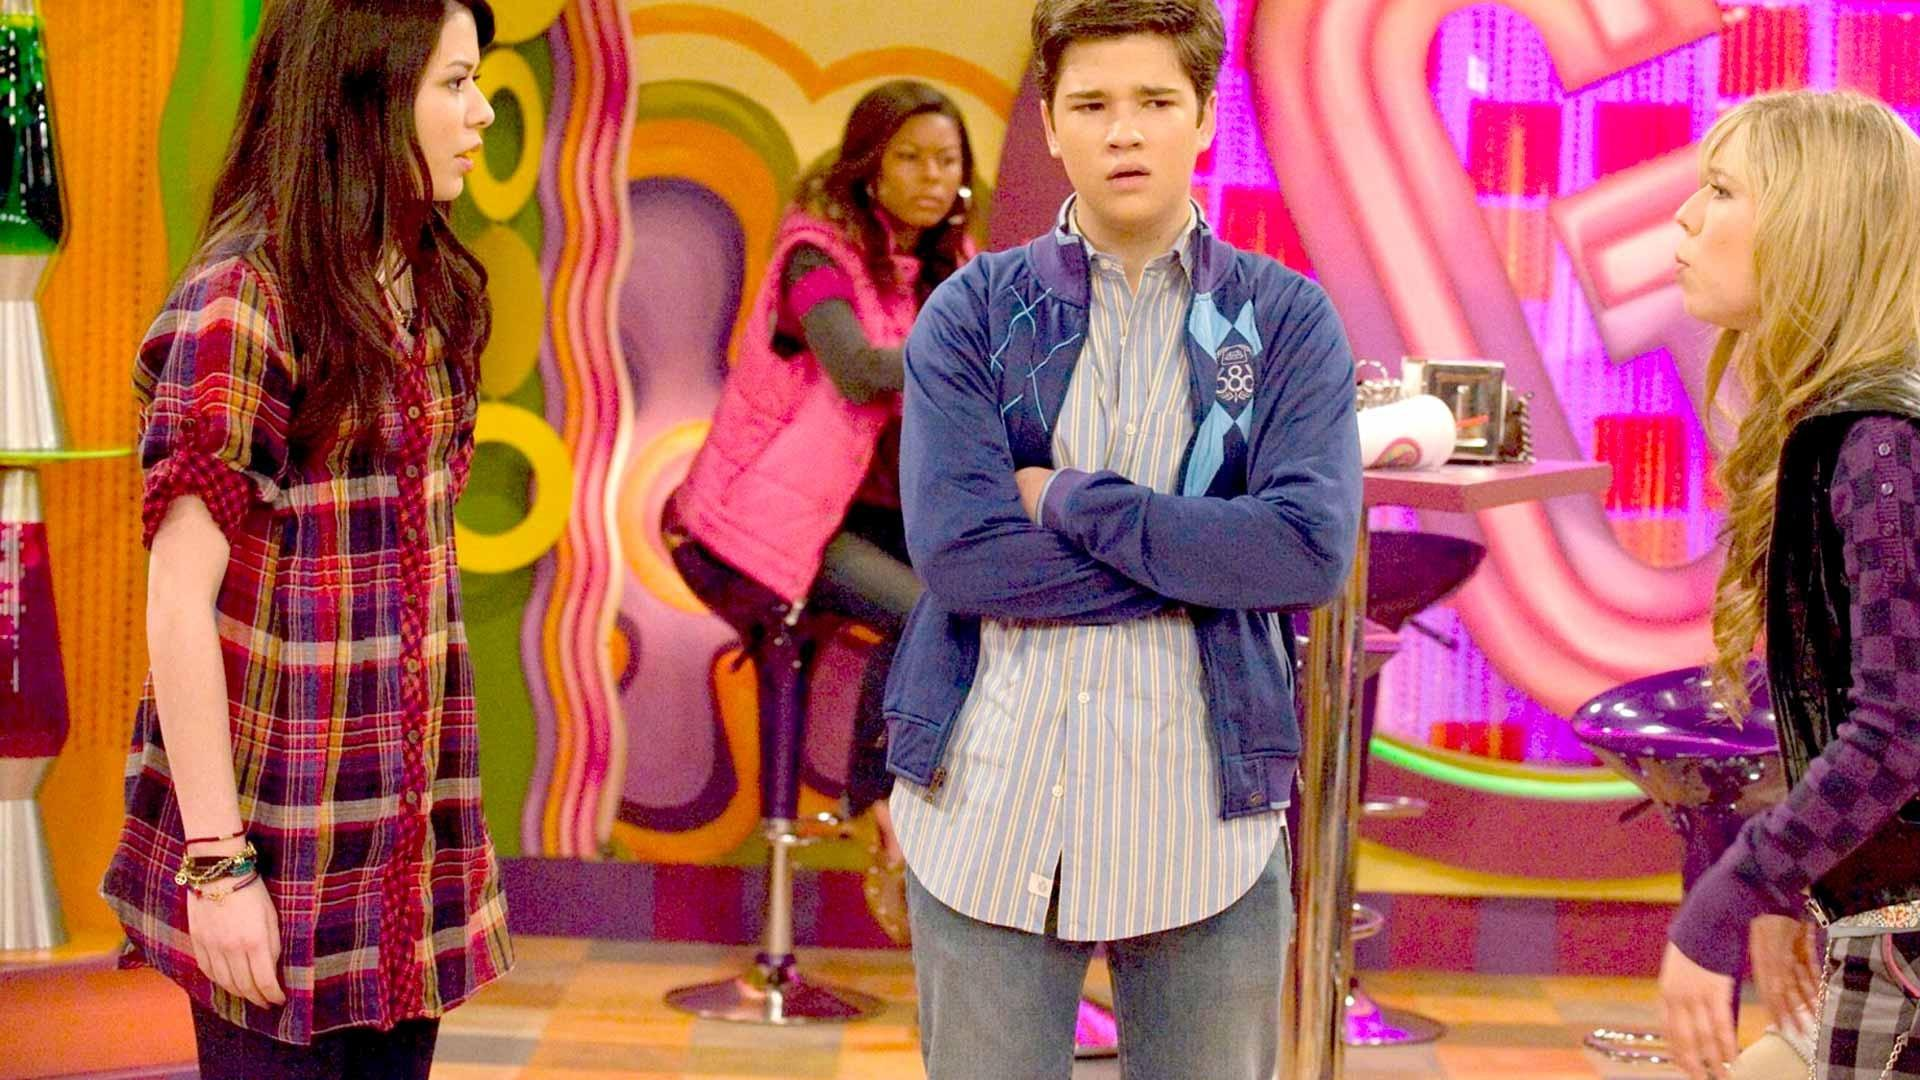 Super! iCarly